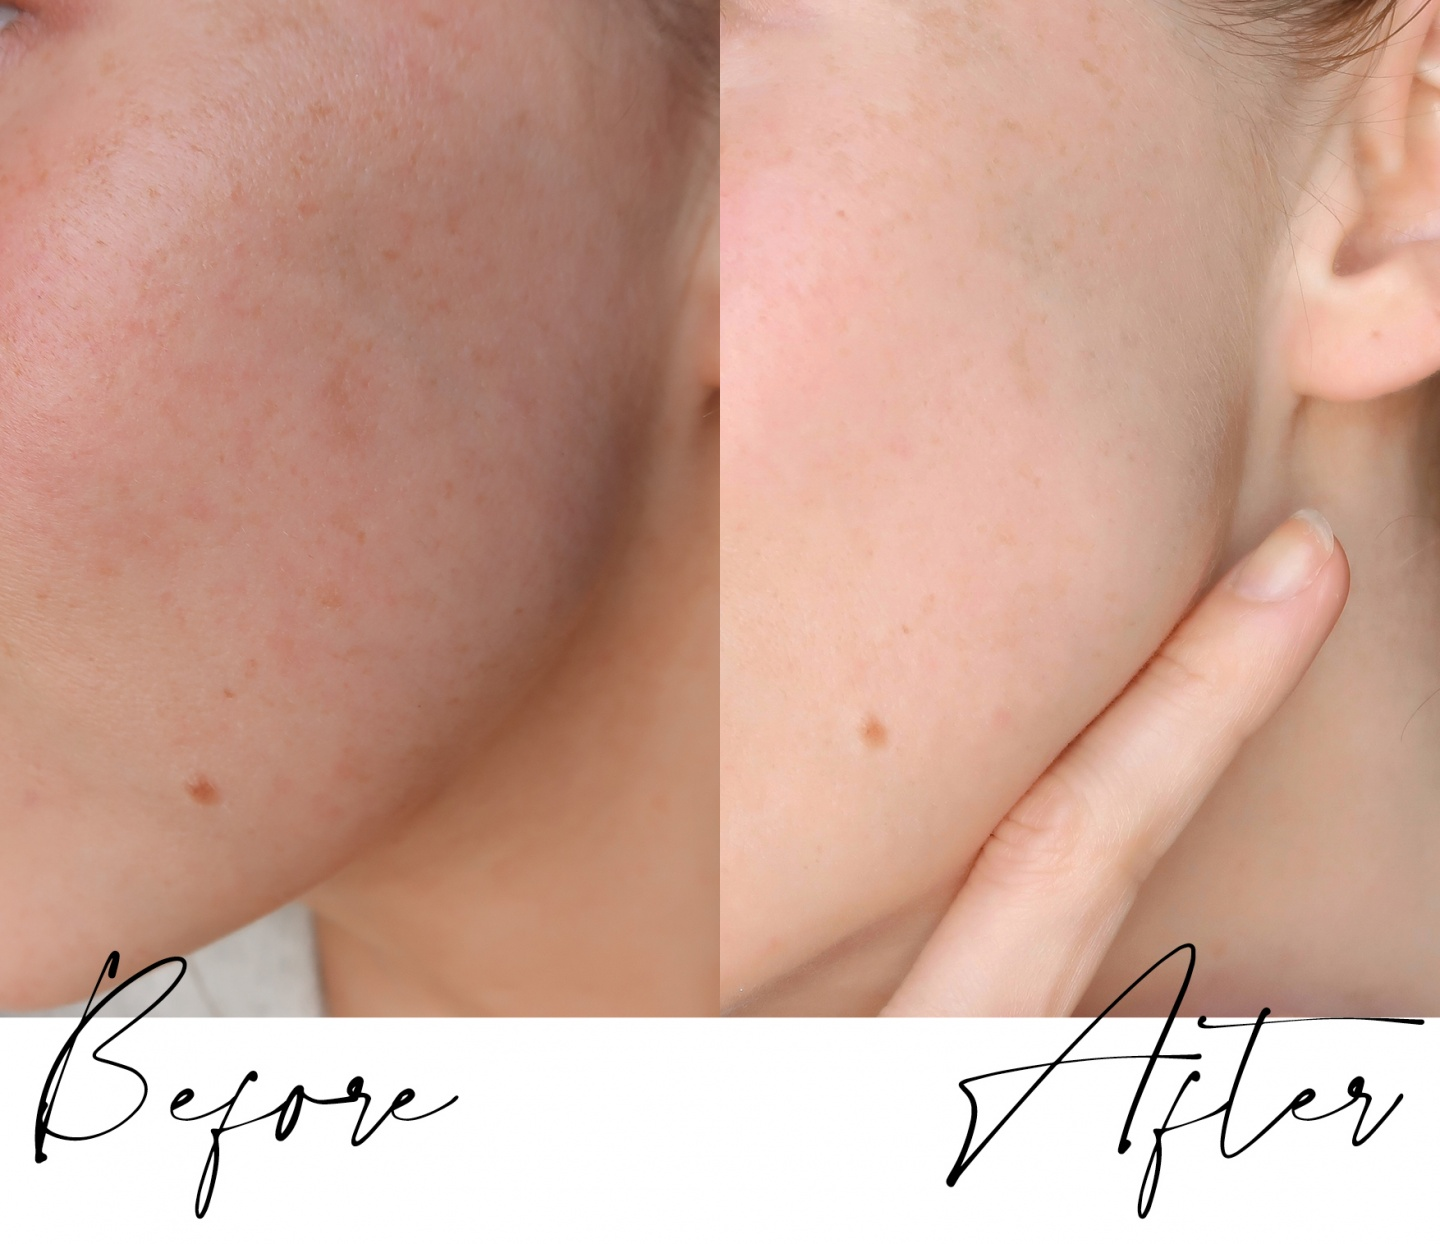 deminuage, nano pen, nanochip, microneedling at home device, reduce wrinkles, clear acne